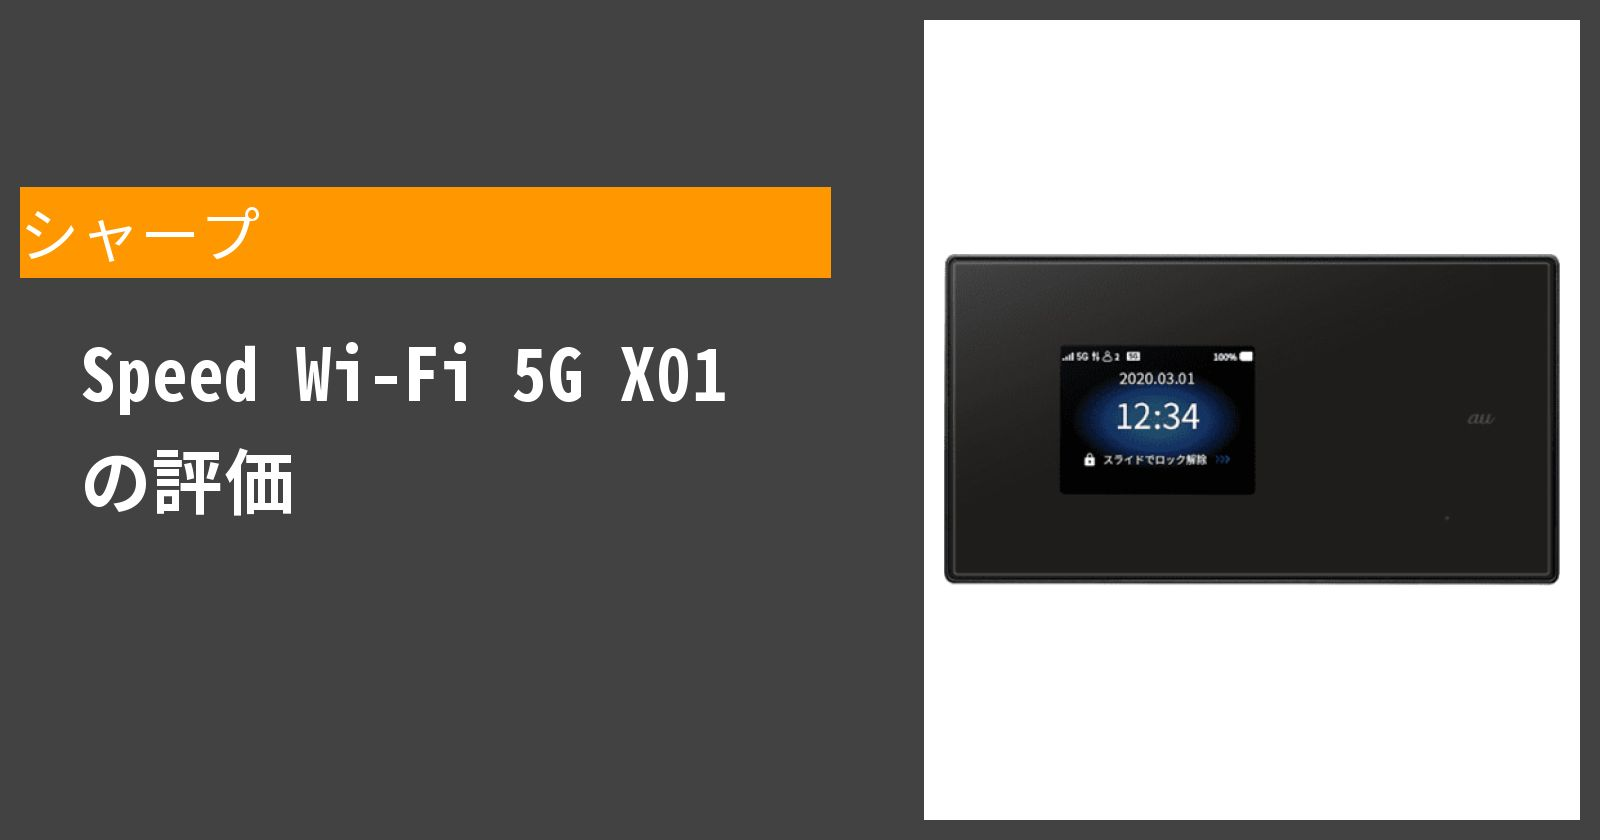 Speed Wi-Fi 5G X01を徹底評価